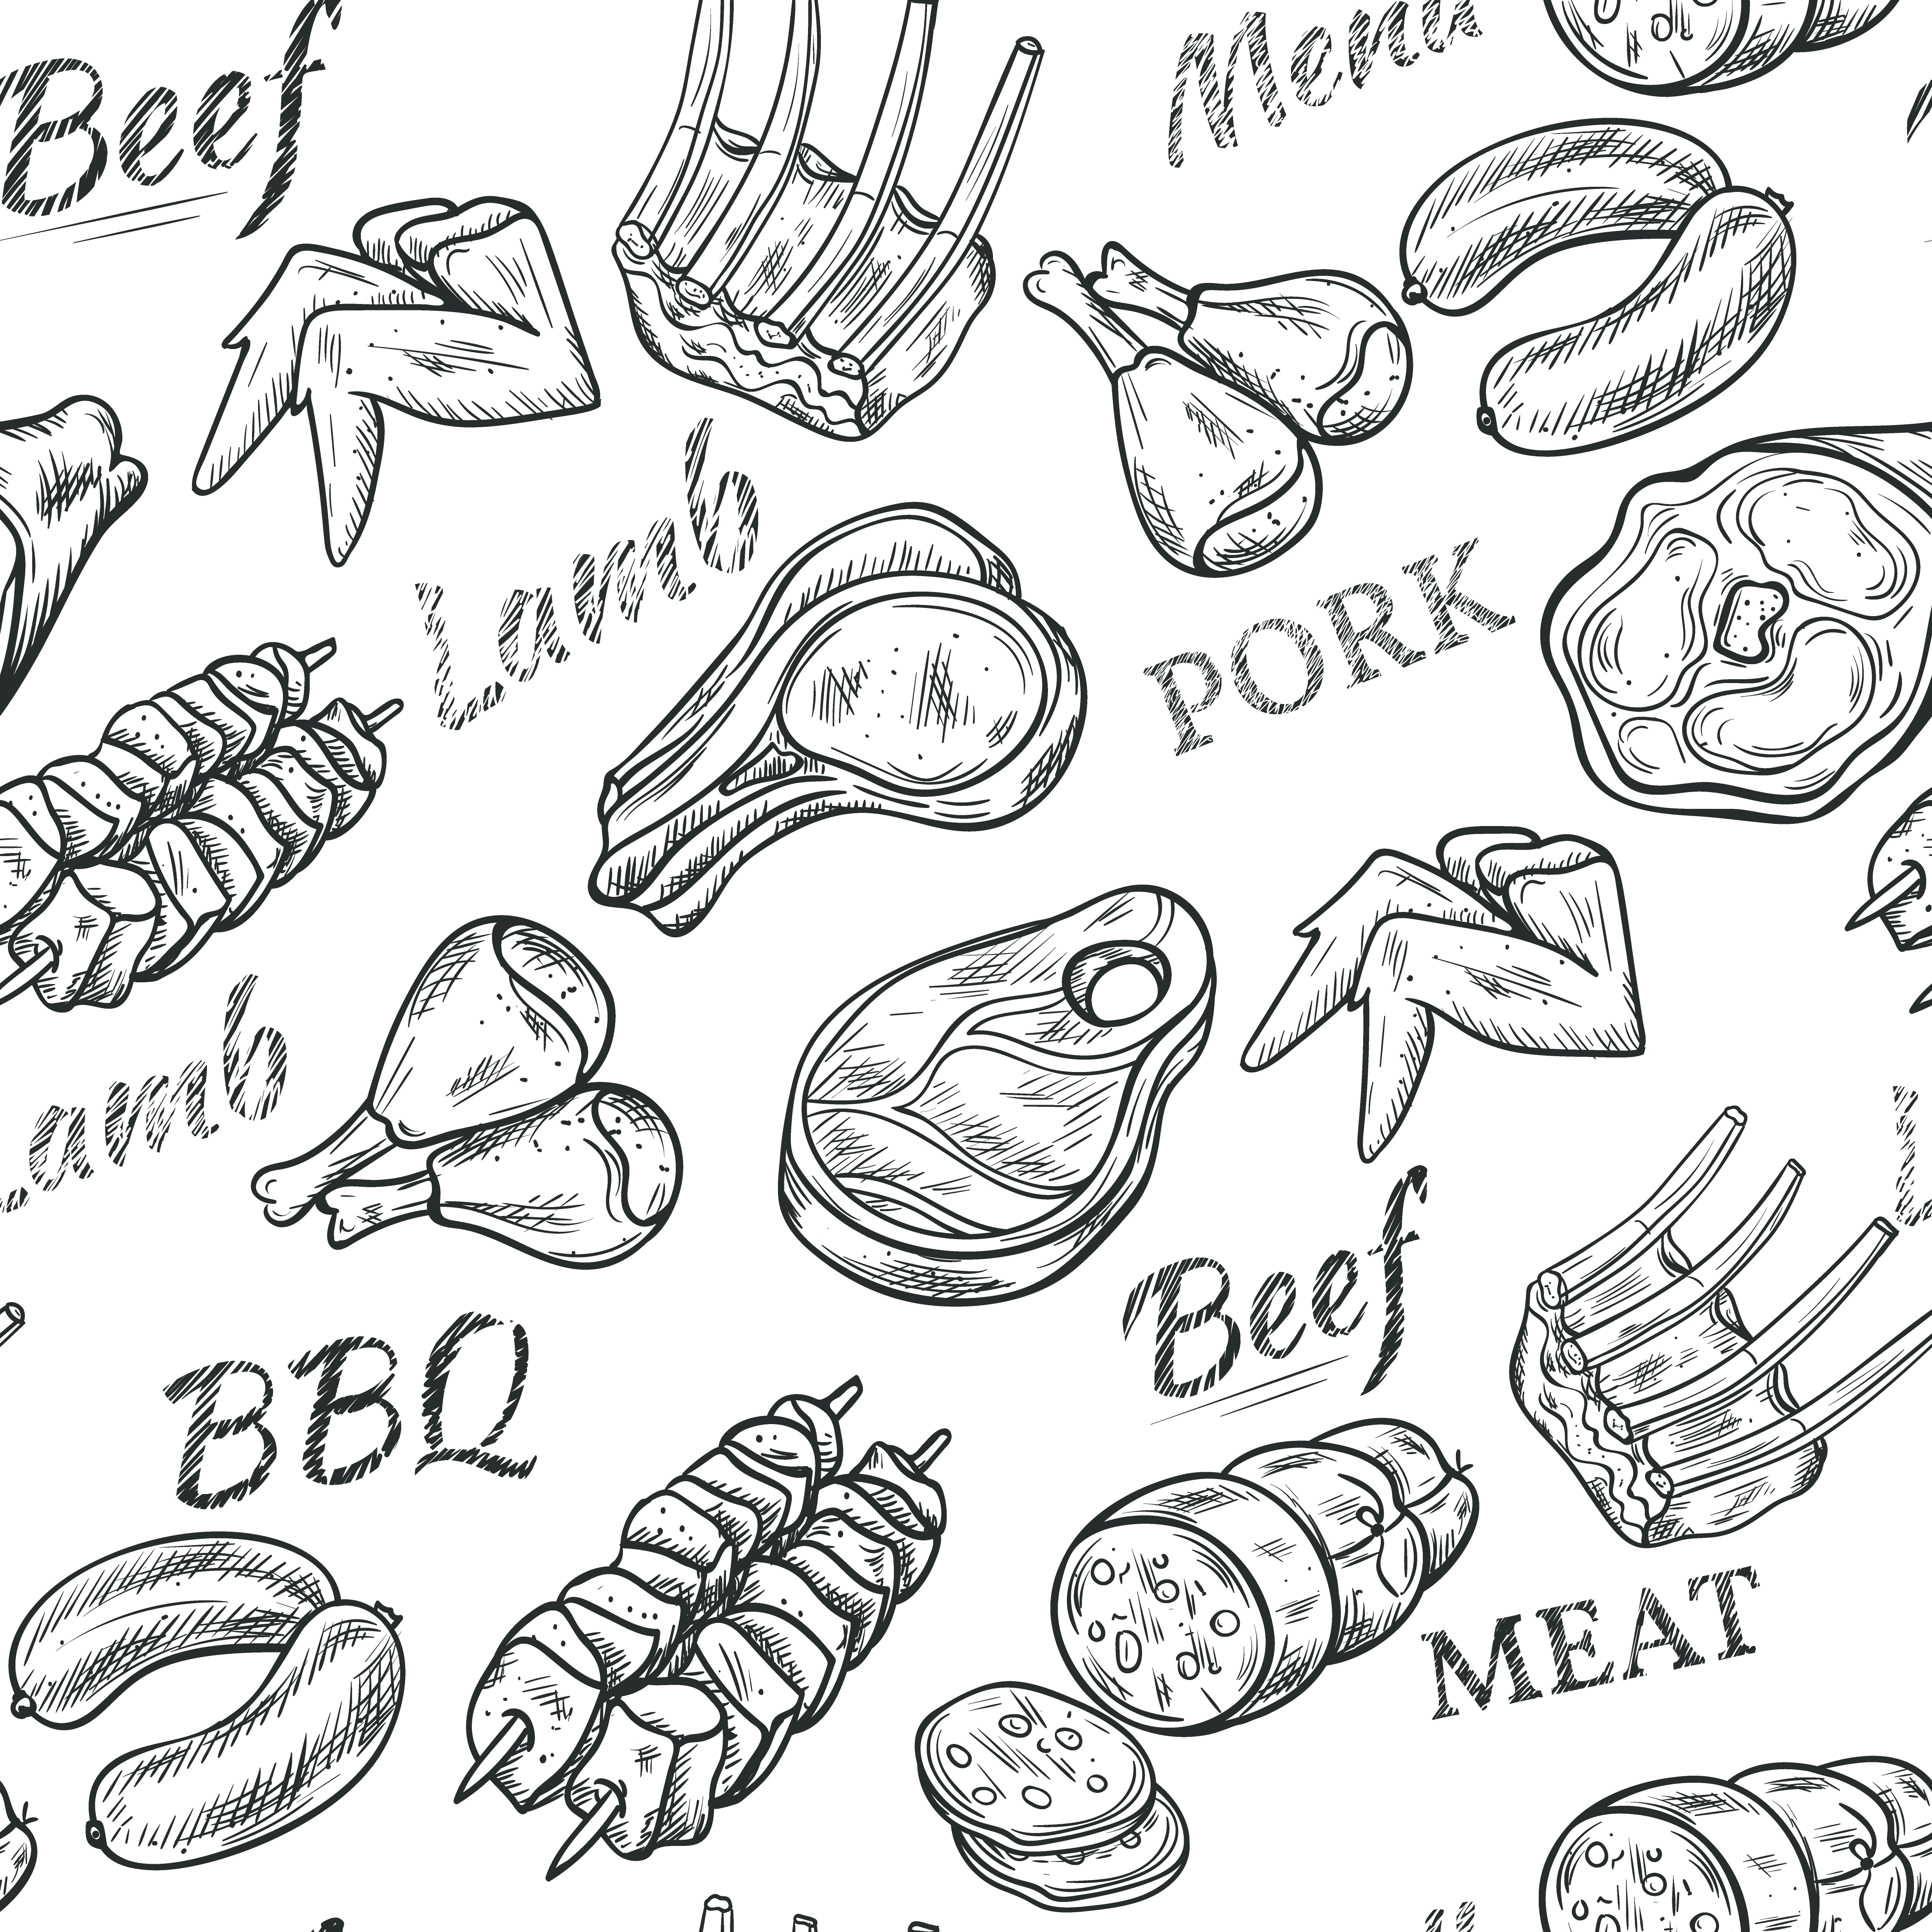 Meat Sketch Seamless Pattern - Download Free Vector Art ...